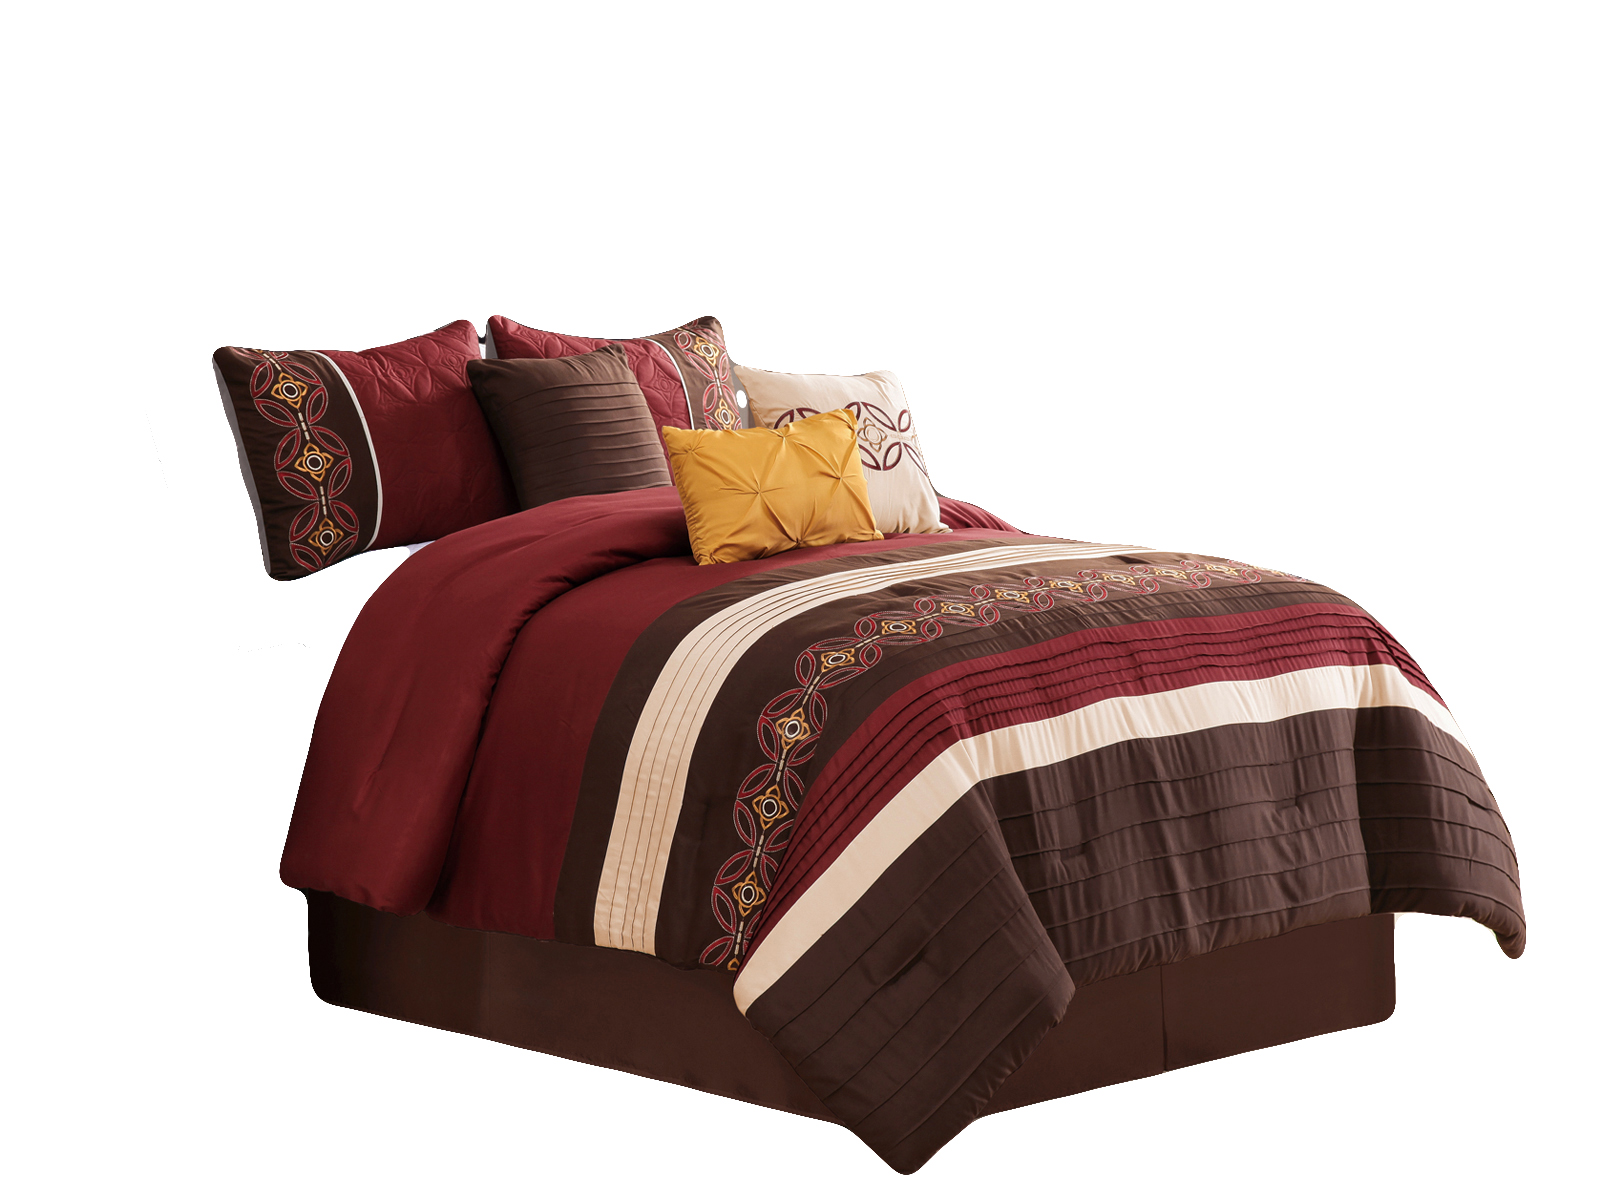 7 Pc Maury Floral Medallion Embroidery Embossed Pleated Stripe Comforter Set Burgundy Brown Beige King